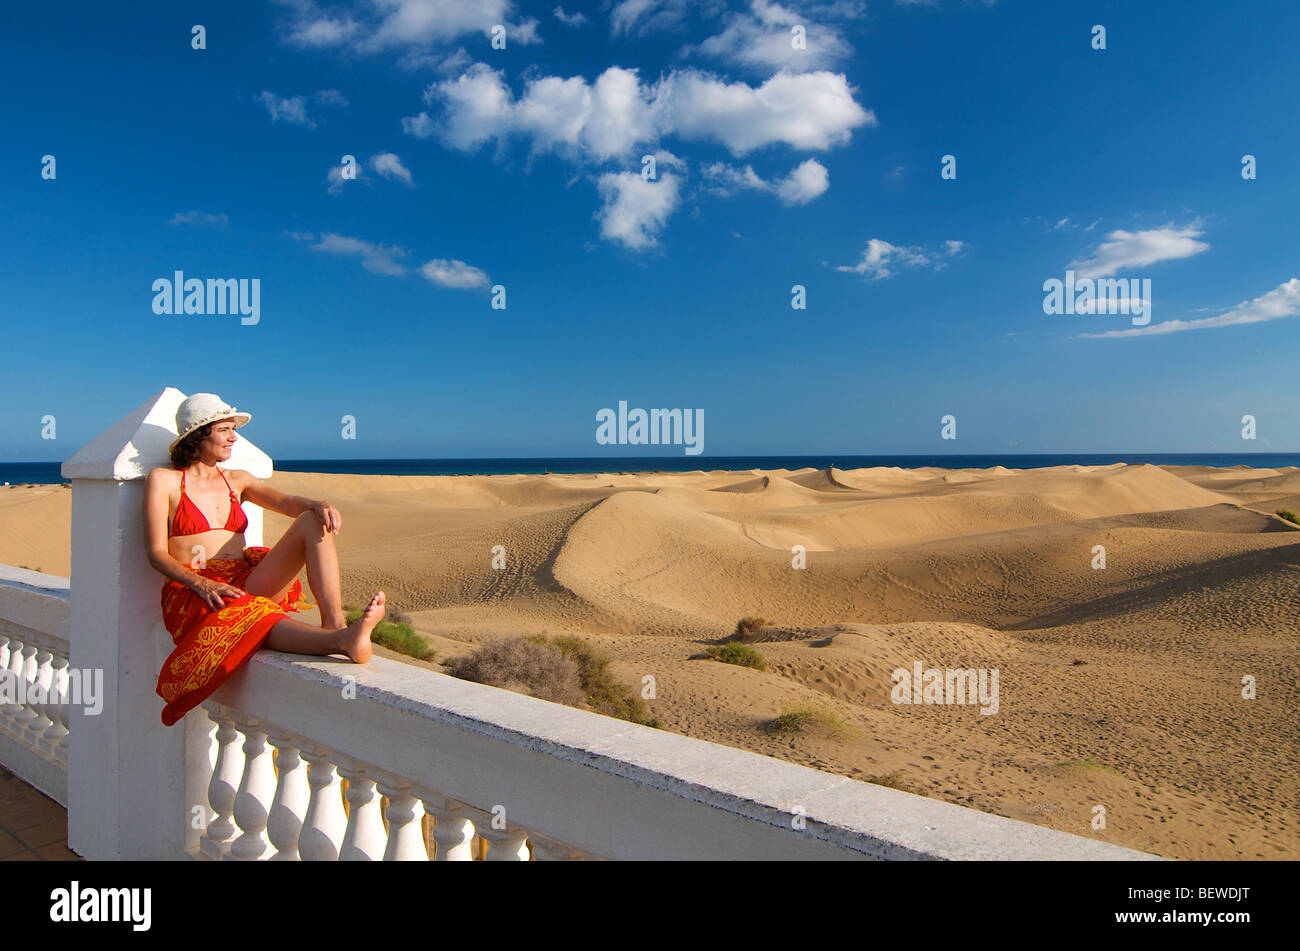 Woman sitting on a fence looking at the sand dunes, Maspalomas, Gran Canaria, Spain - Stock Image